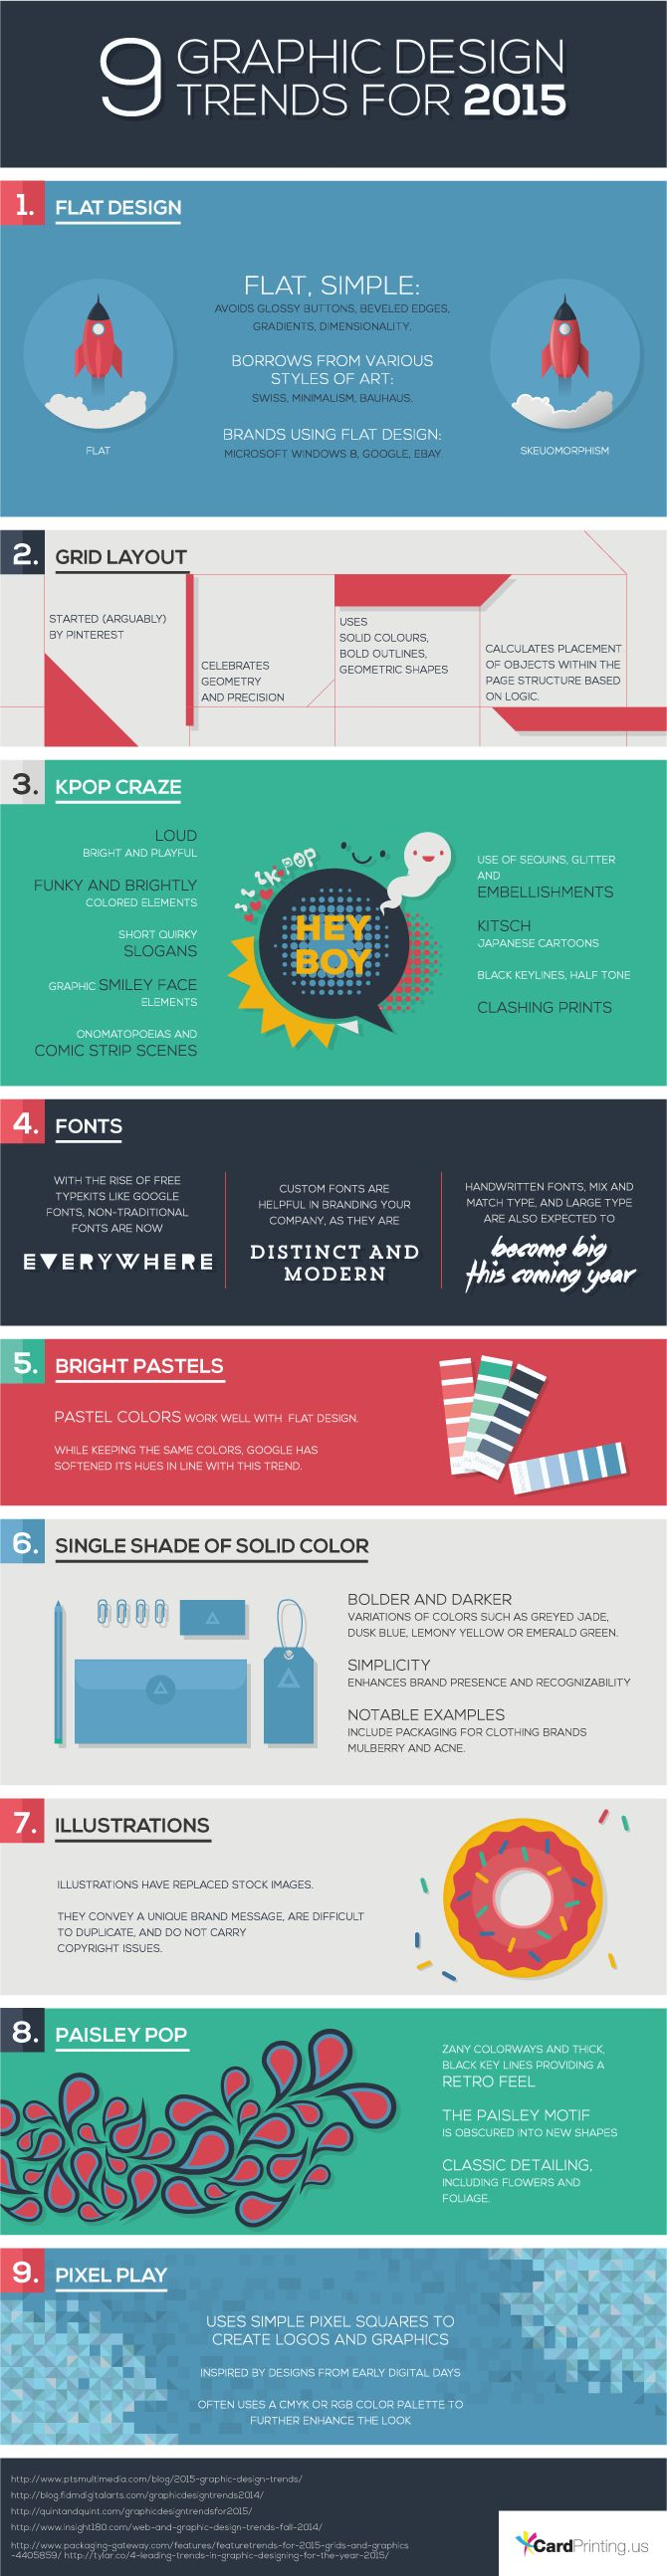 Design Trends - http://www.digitalinformationworld.com/2015/01/graphic-design-trends-infographic.html?m=1